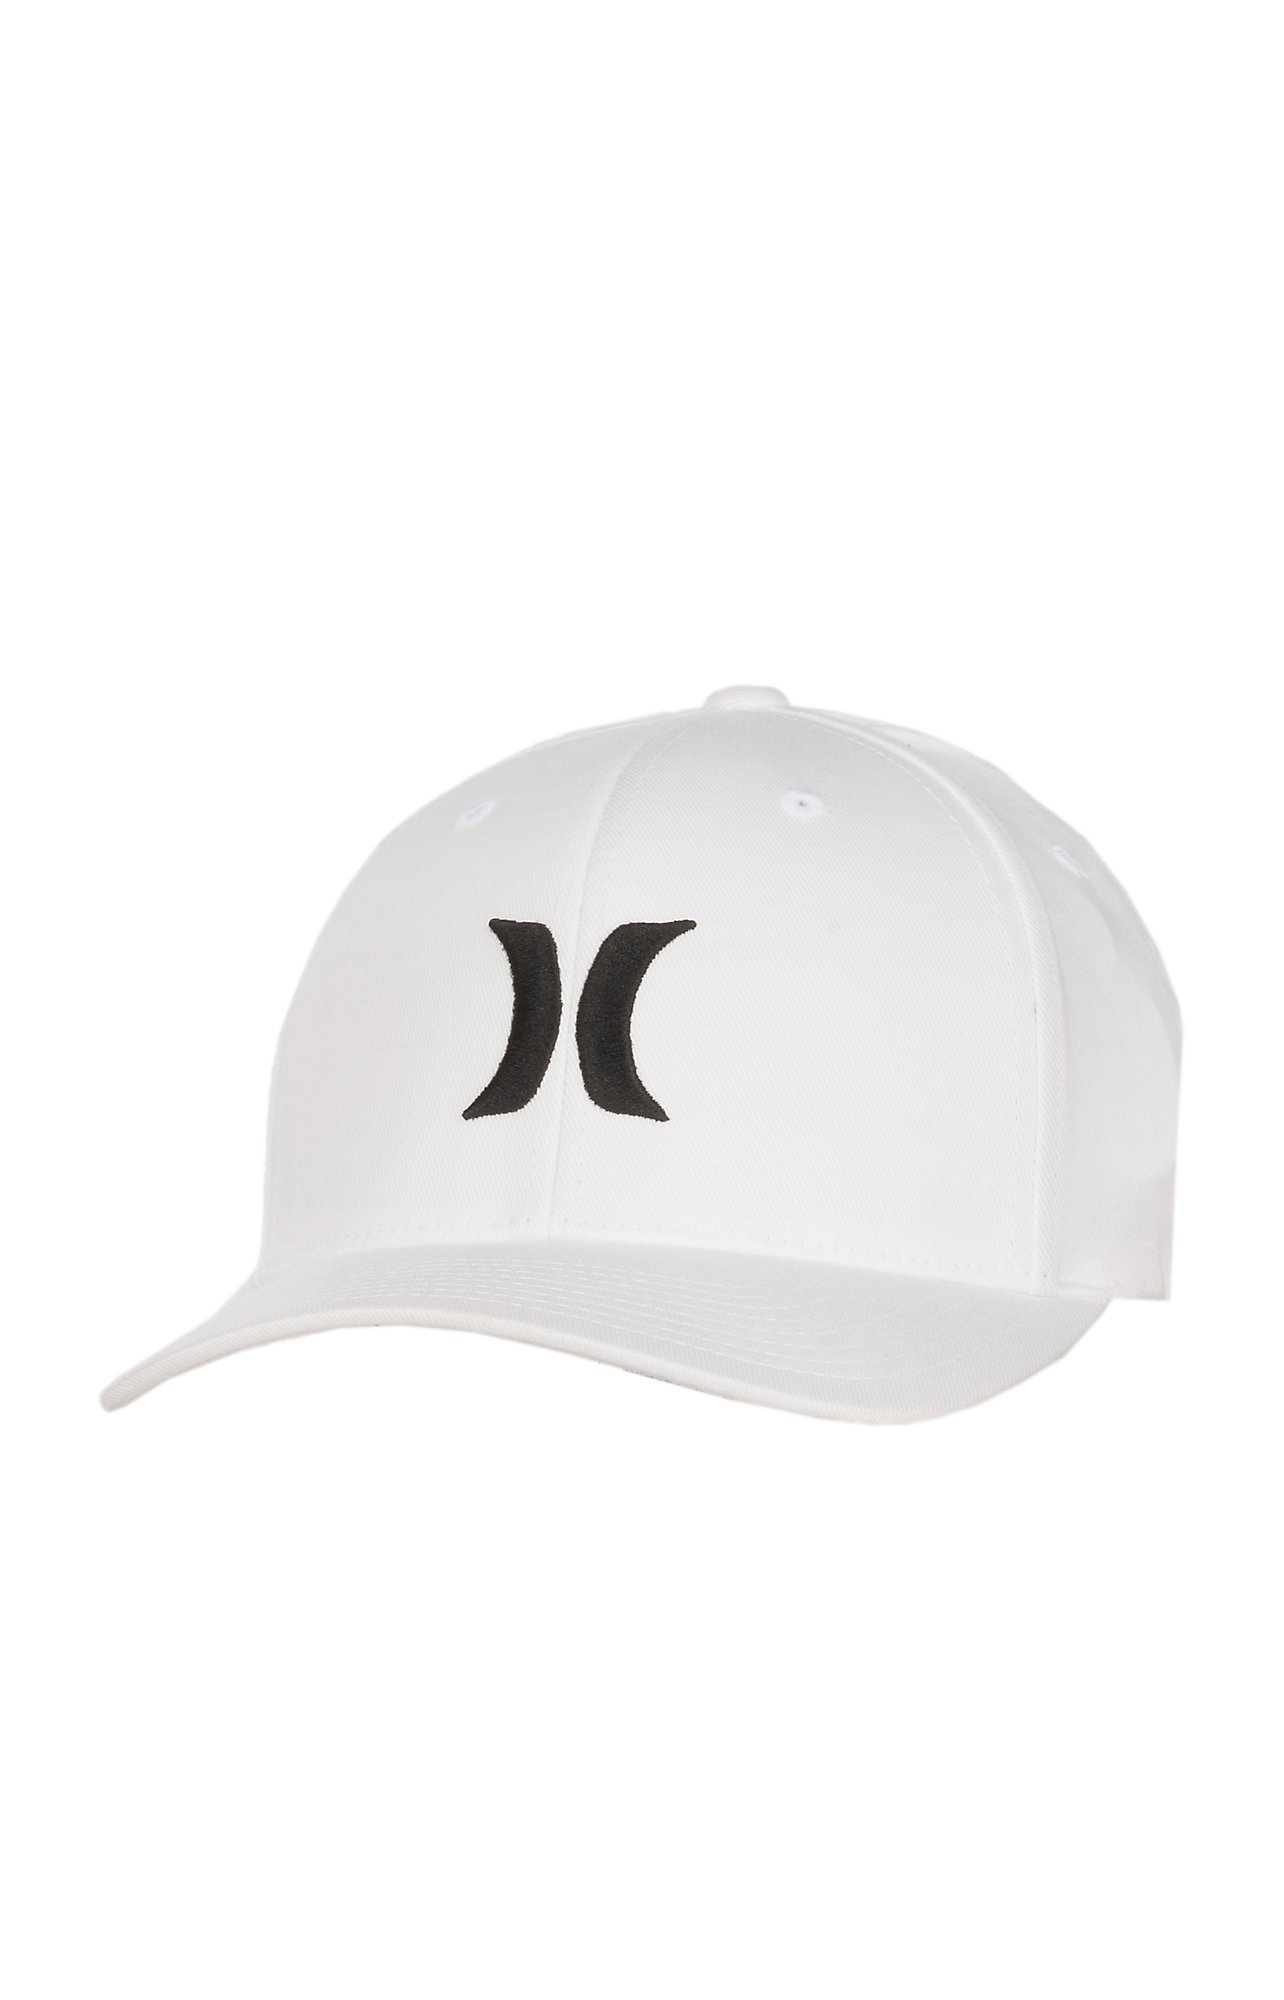 Hurley One and Only White with Black FlexFit Cap  b4326957337